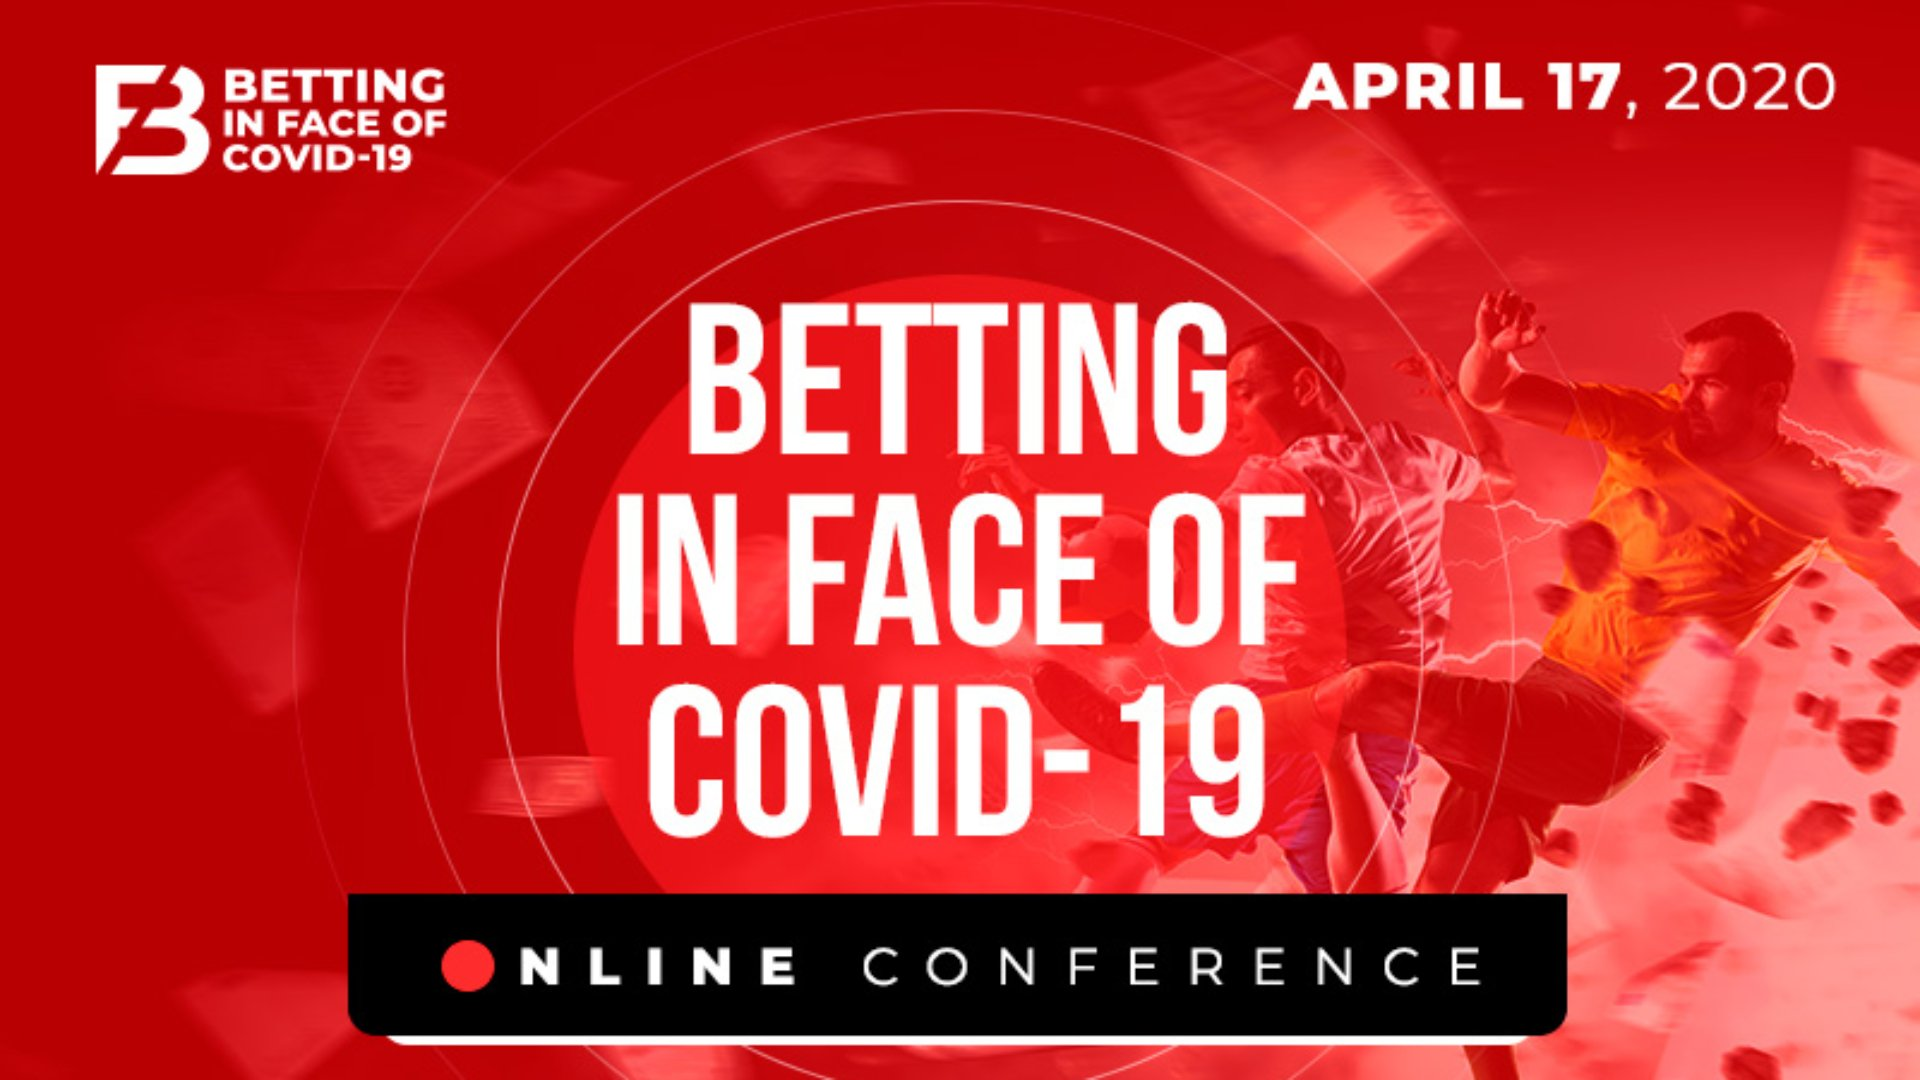 Betting em face do COVID-19: Conferência on-line